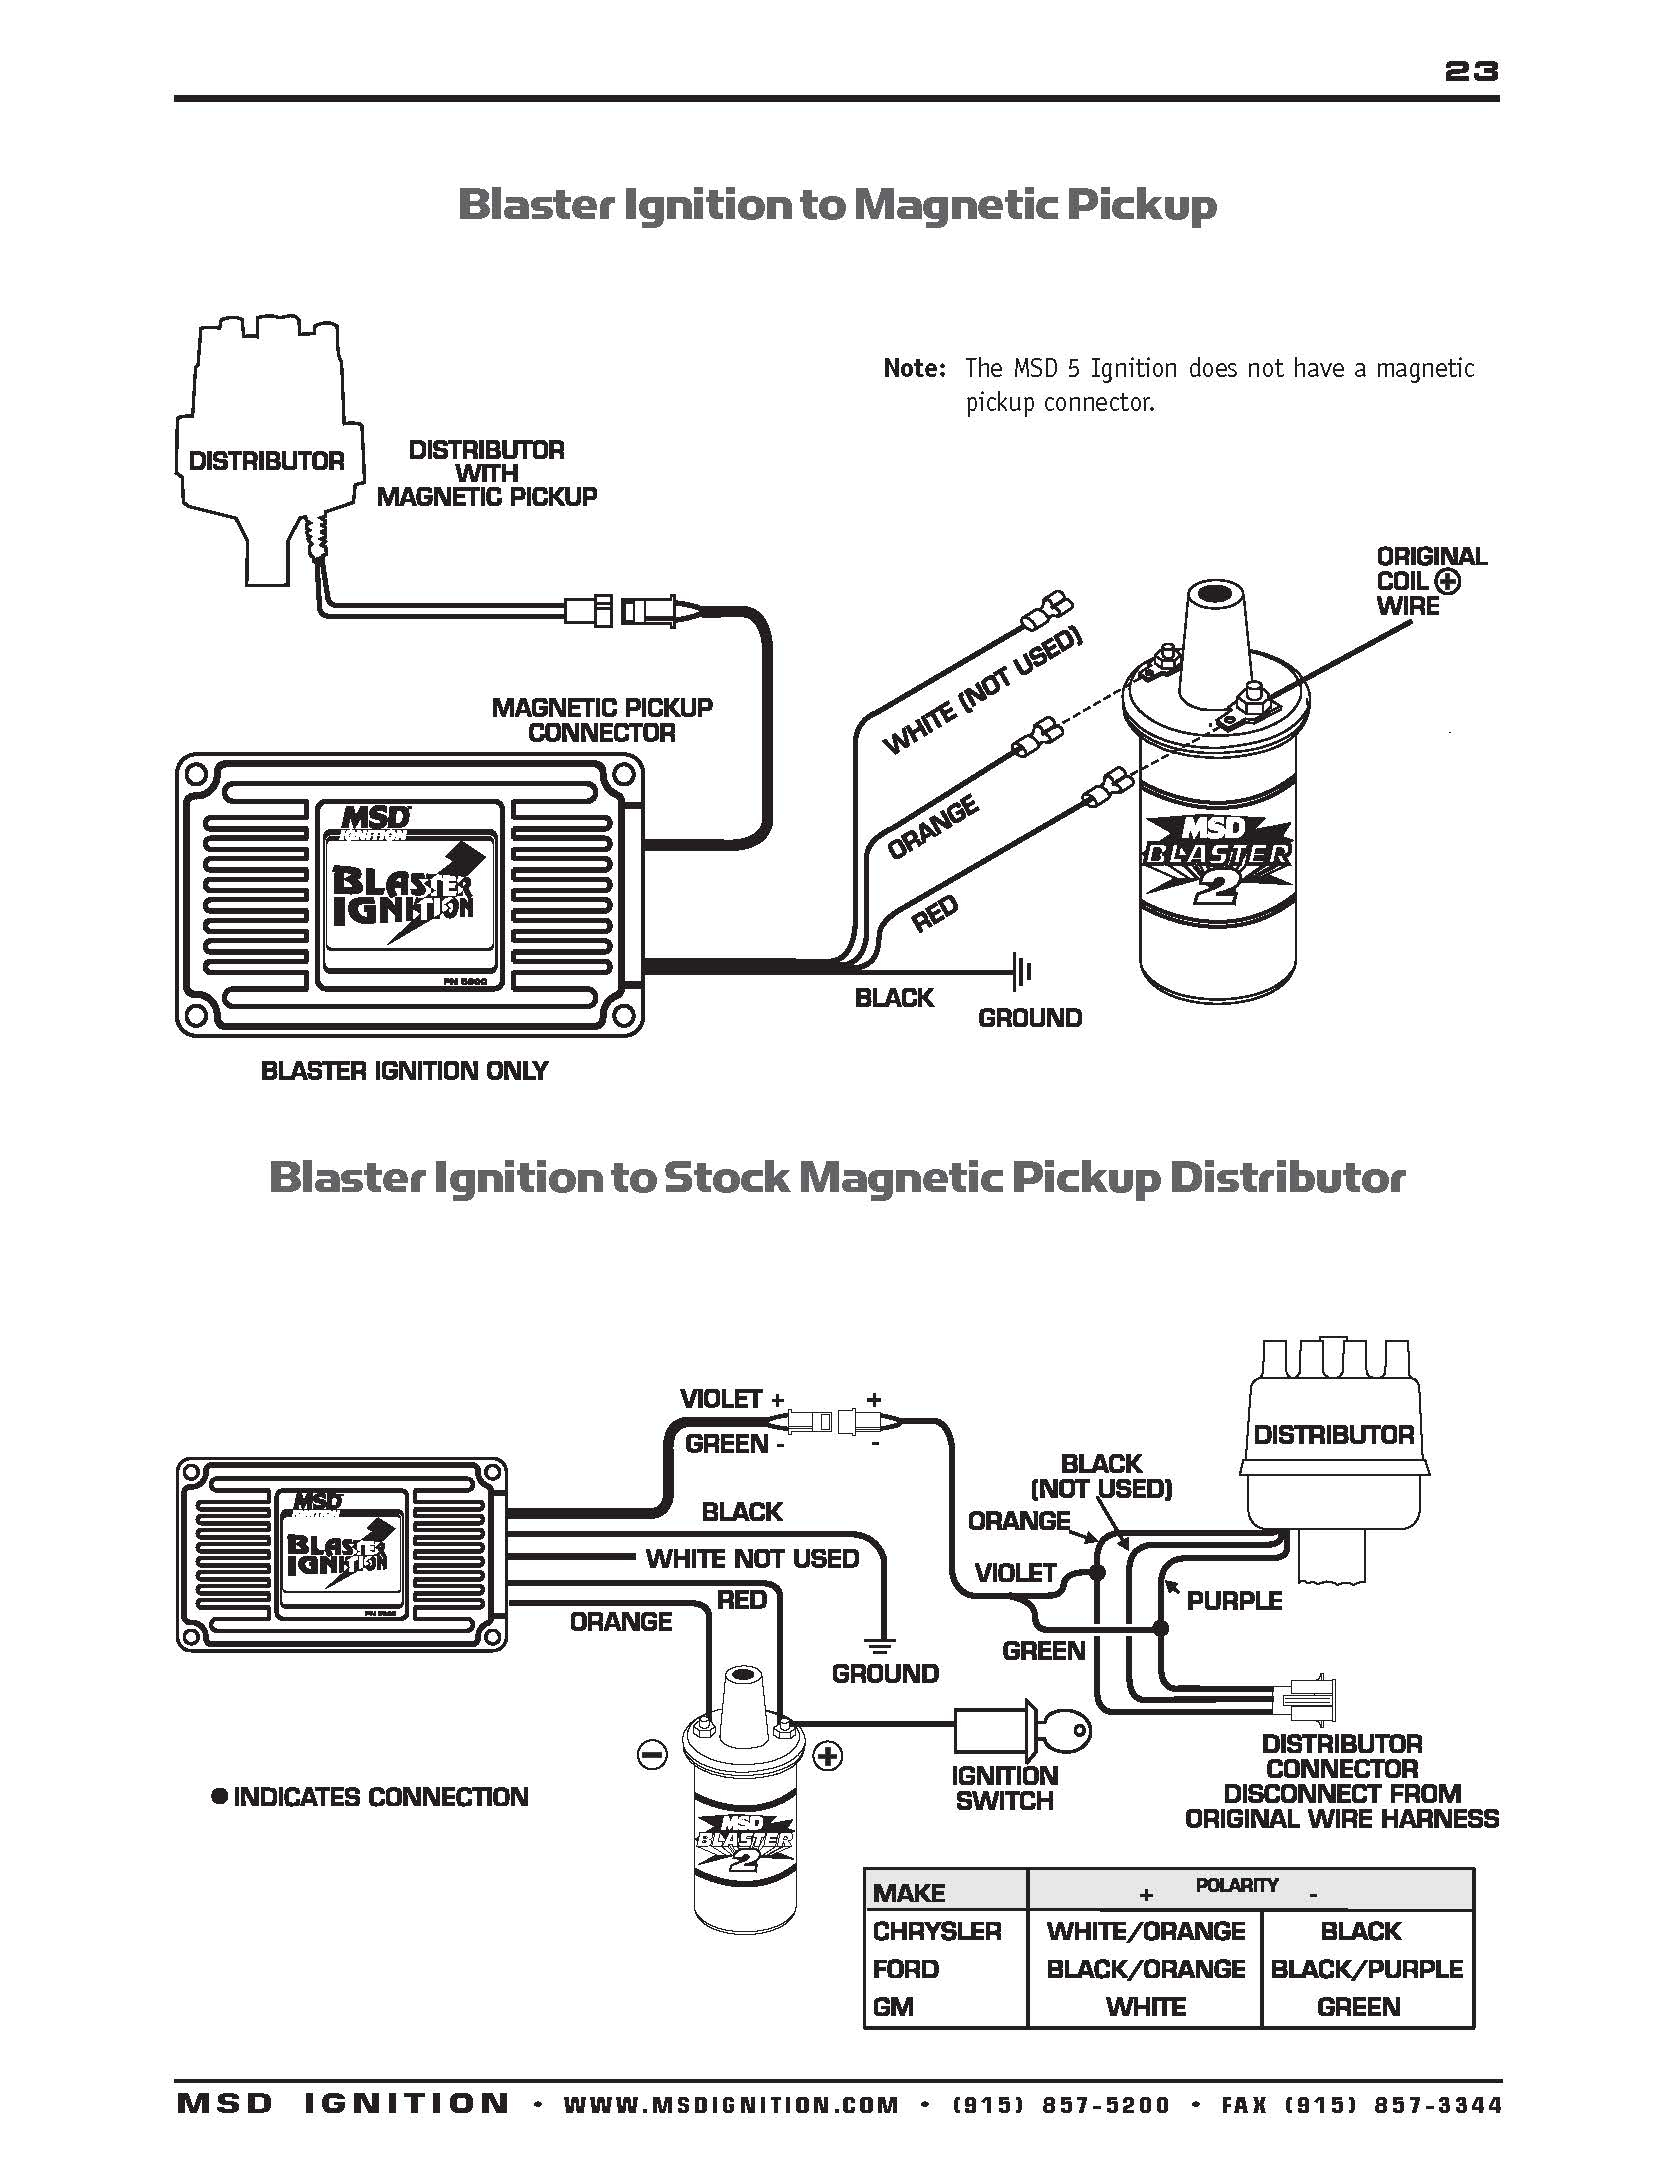 Msd Ignition Wiring Diagram - Wiring Diagrams Hubs - Msd Ignition Wiring Diagram Chevy